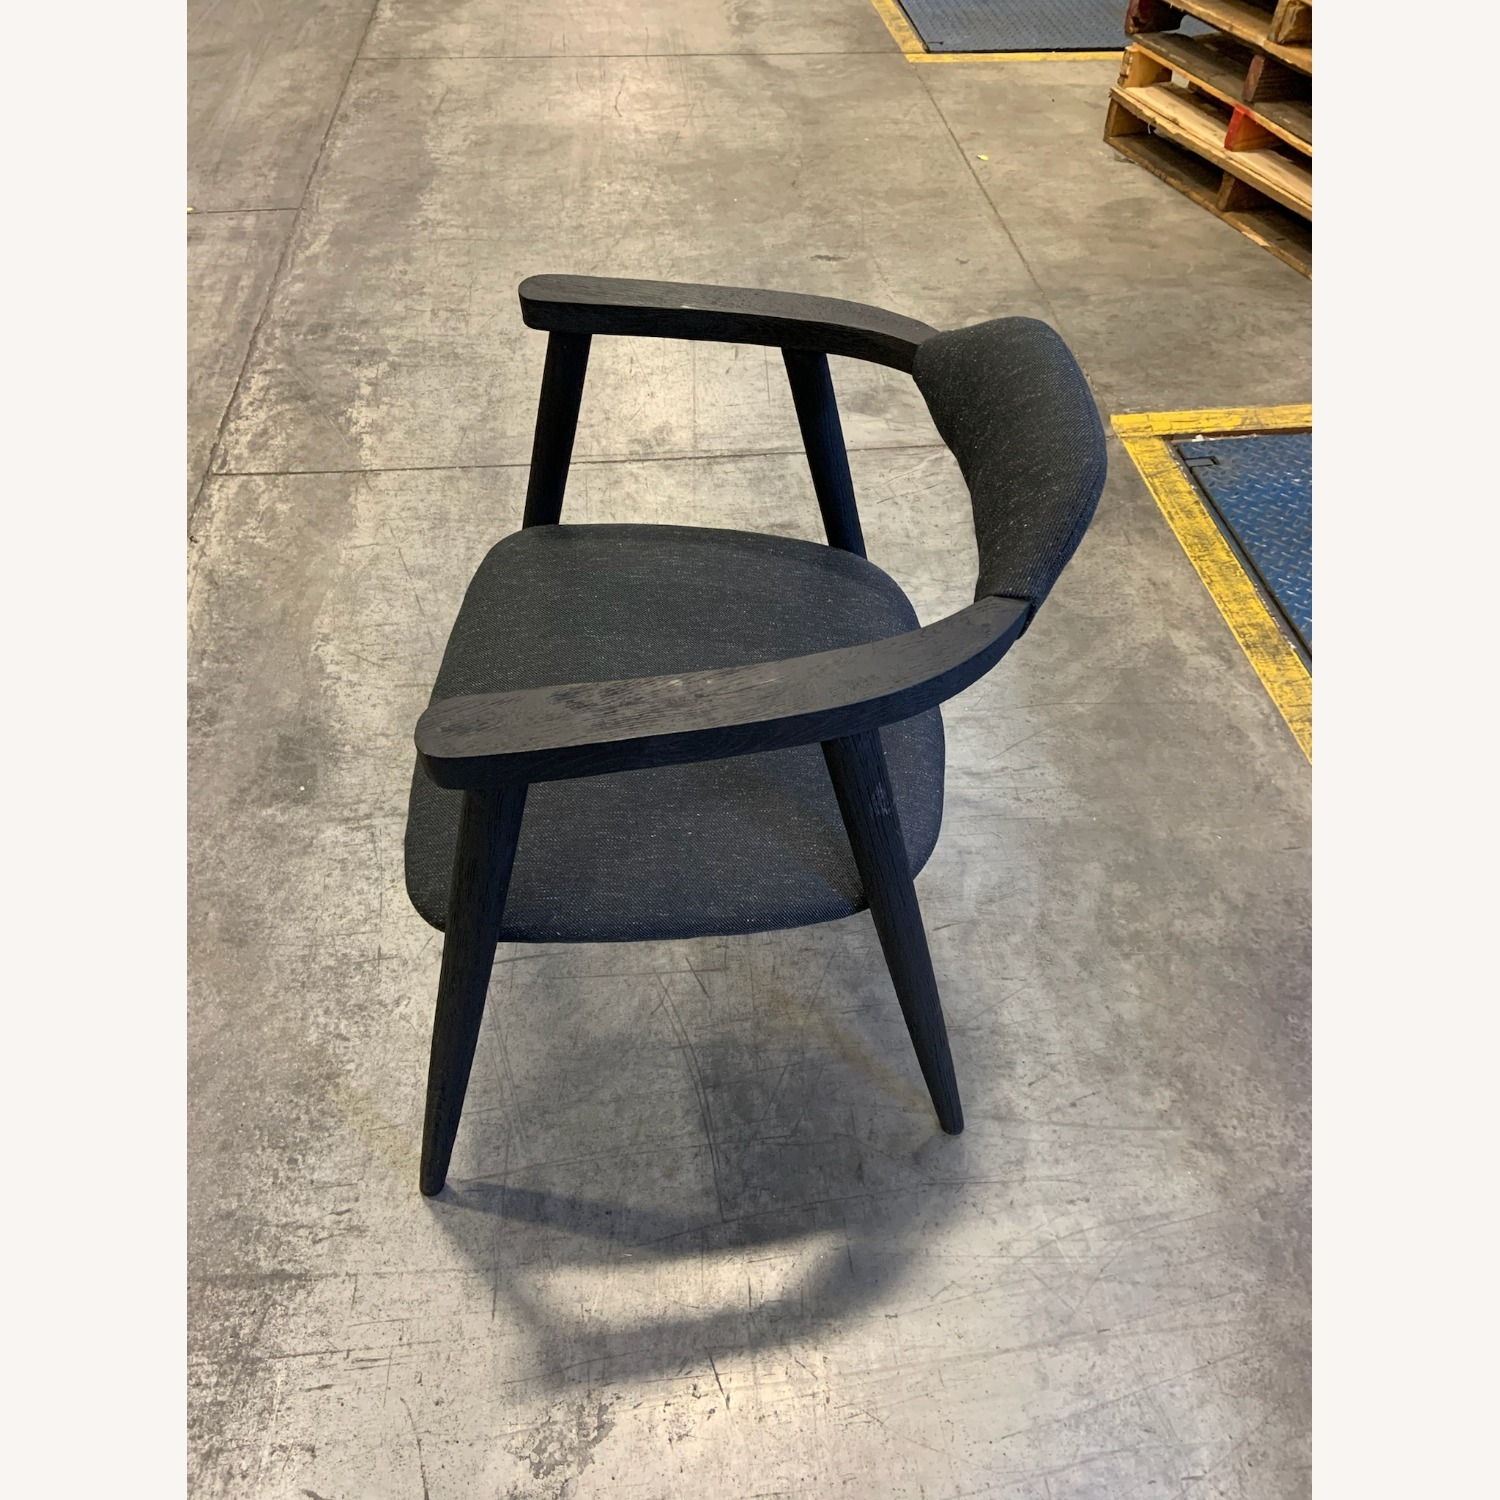 LH Imports Finch Chair - image-5